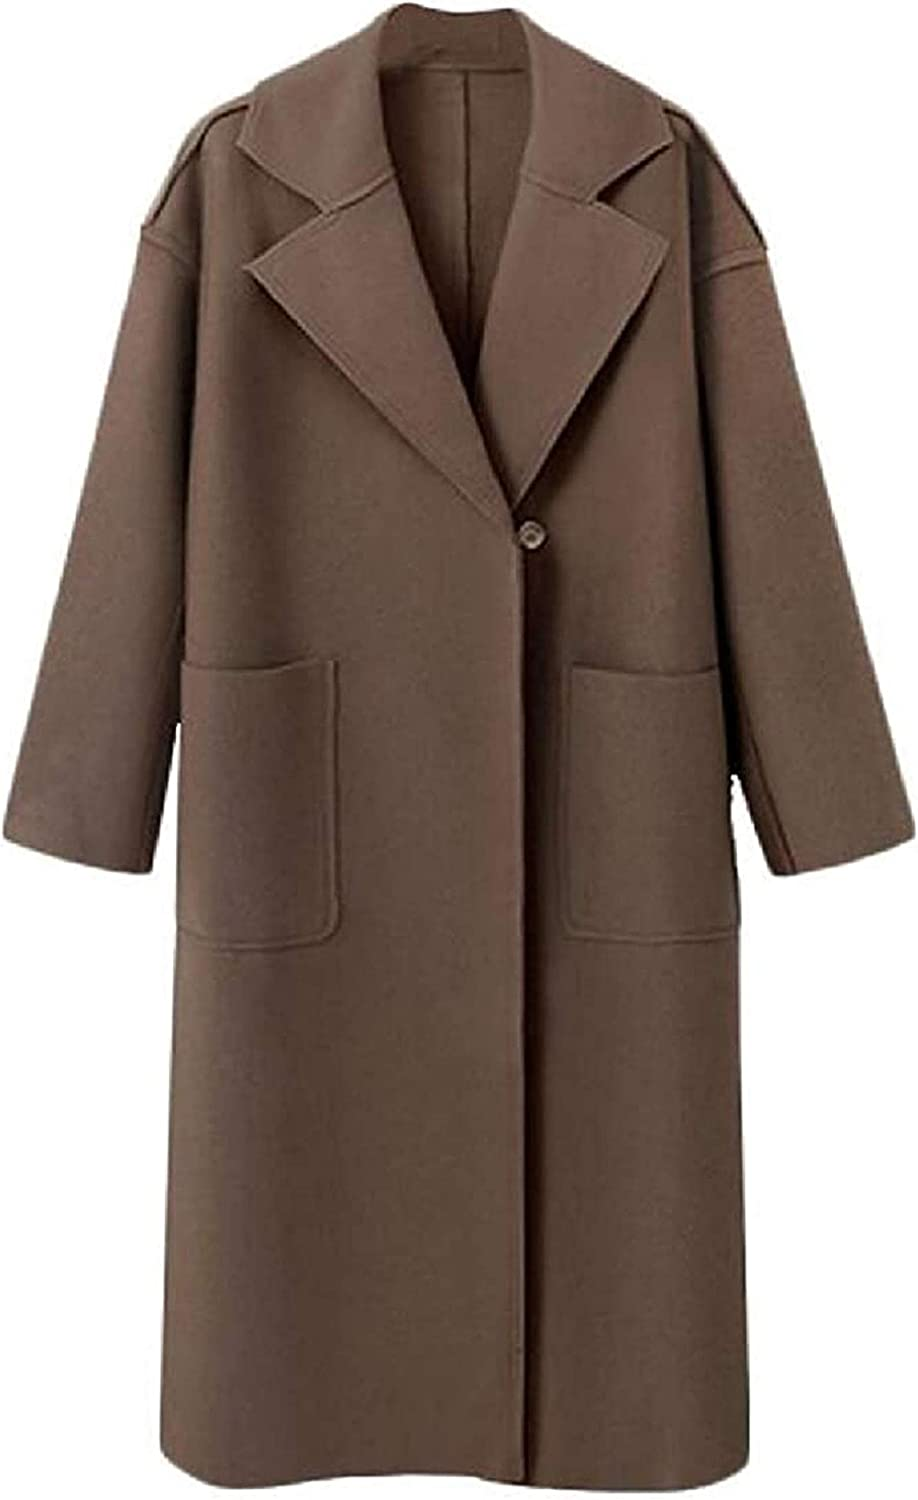 Haayee Women's Solid Color Thick Belted Loose Fit Wool Blend Trench Pea Coat Overcoat